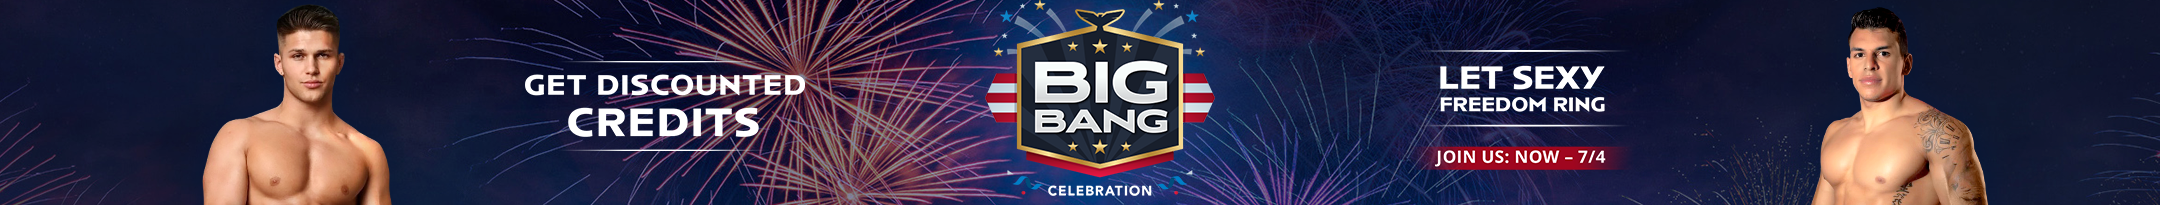 Big Bang Discount (Day 3) Promo